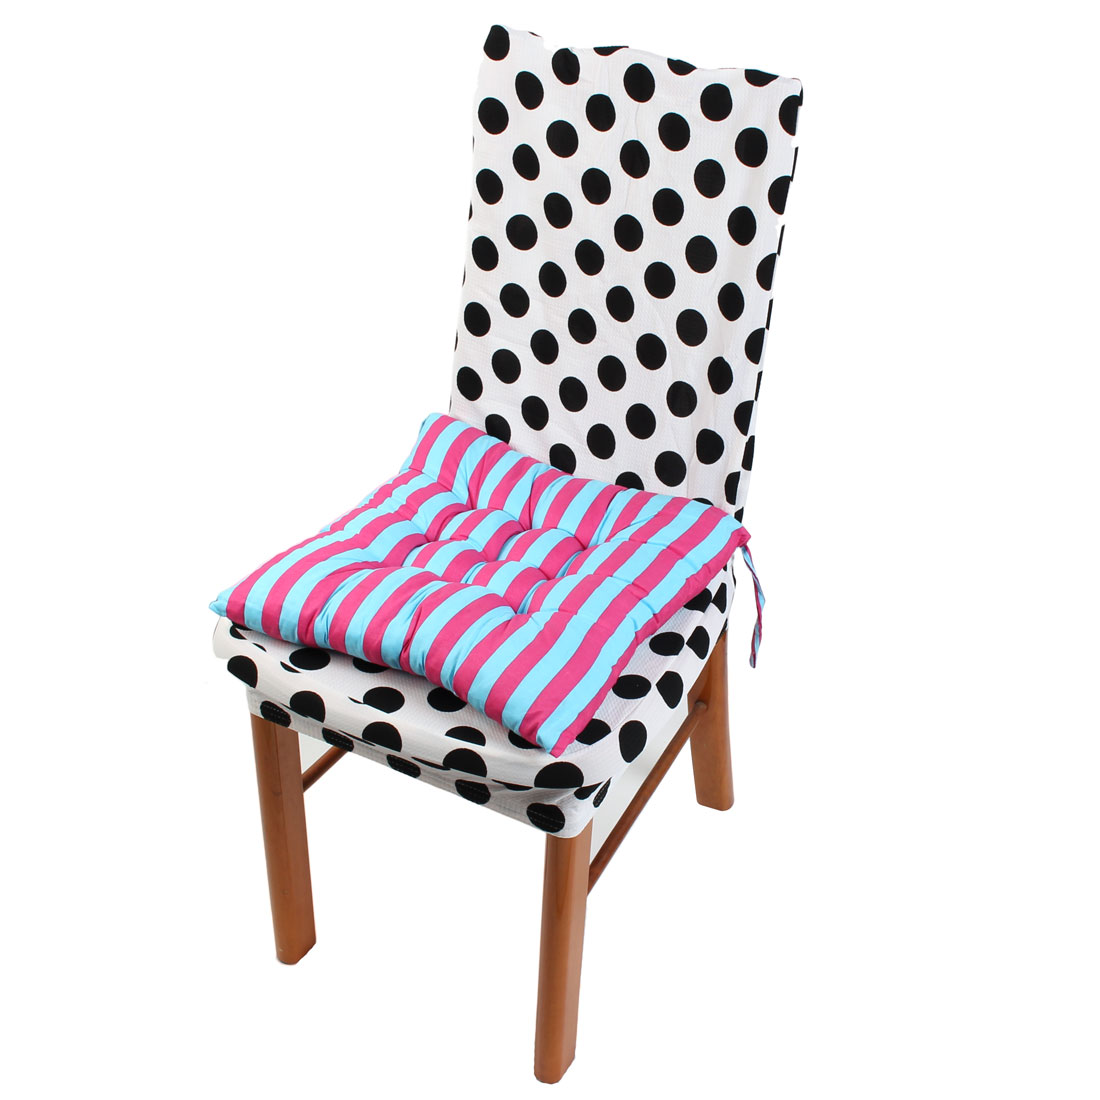 Intdoor Home Chair Cotton Blends Square Stripe Pattern Seat Cushion Fuchsia and Blue 40cm x 40cm